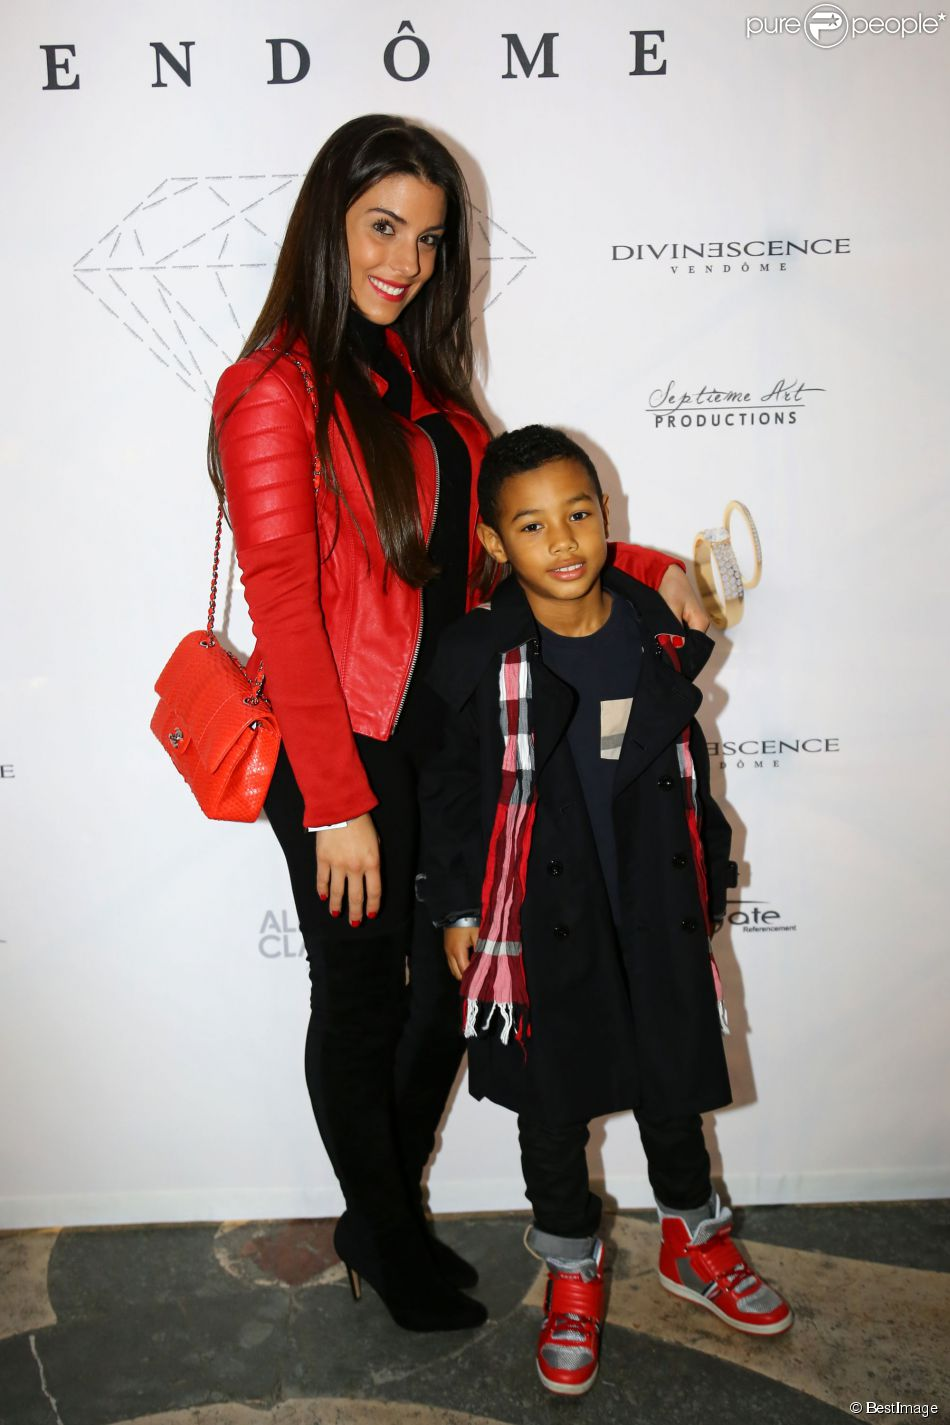 Ludivine Sagna et son fils Elias lors de la soirée Diamond Night by Divinescence Vendôme lors du Paris Art Fair au Grand Palais à Paris, le 26 mars 2015